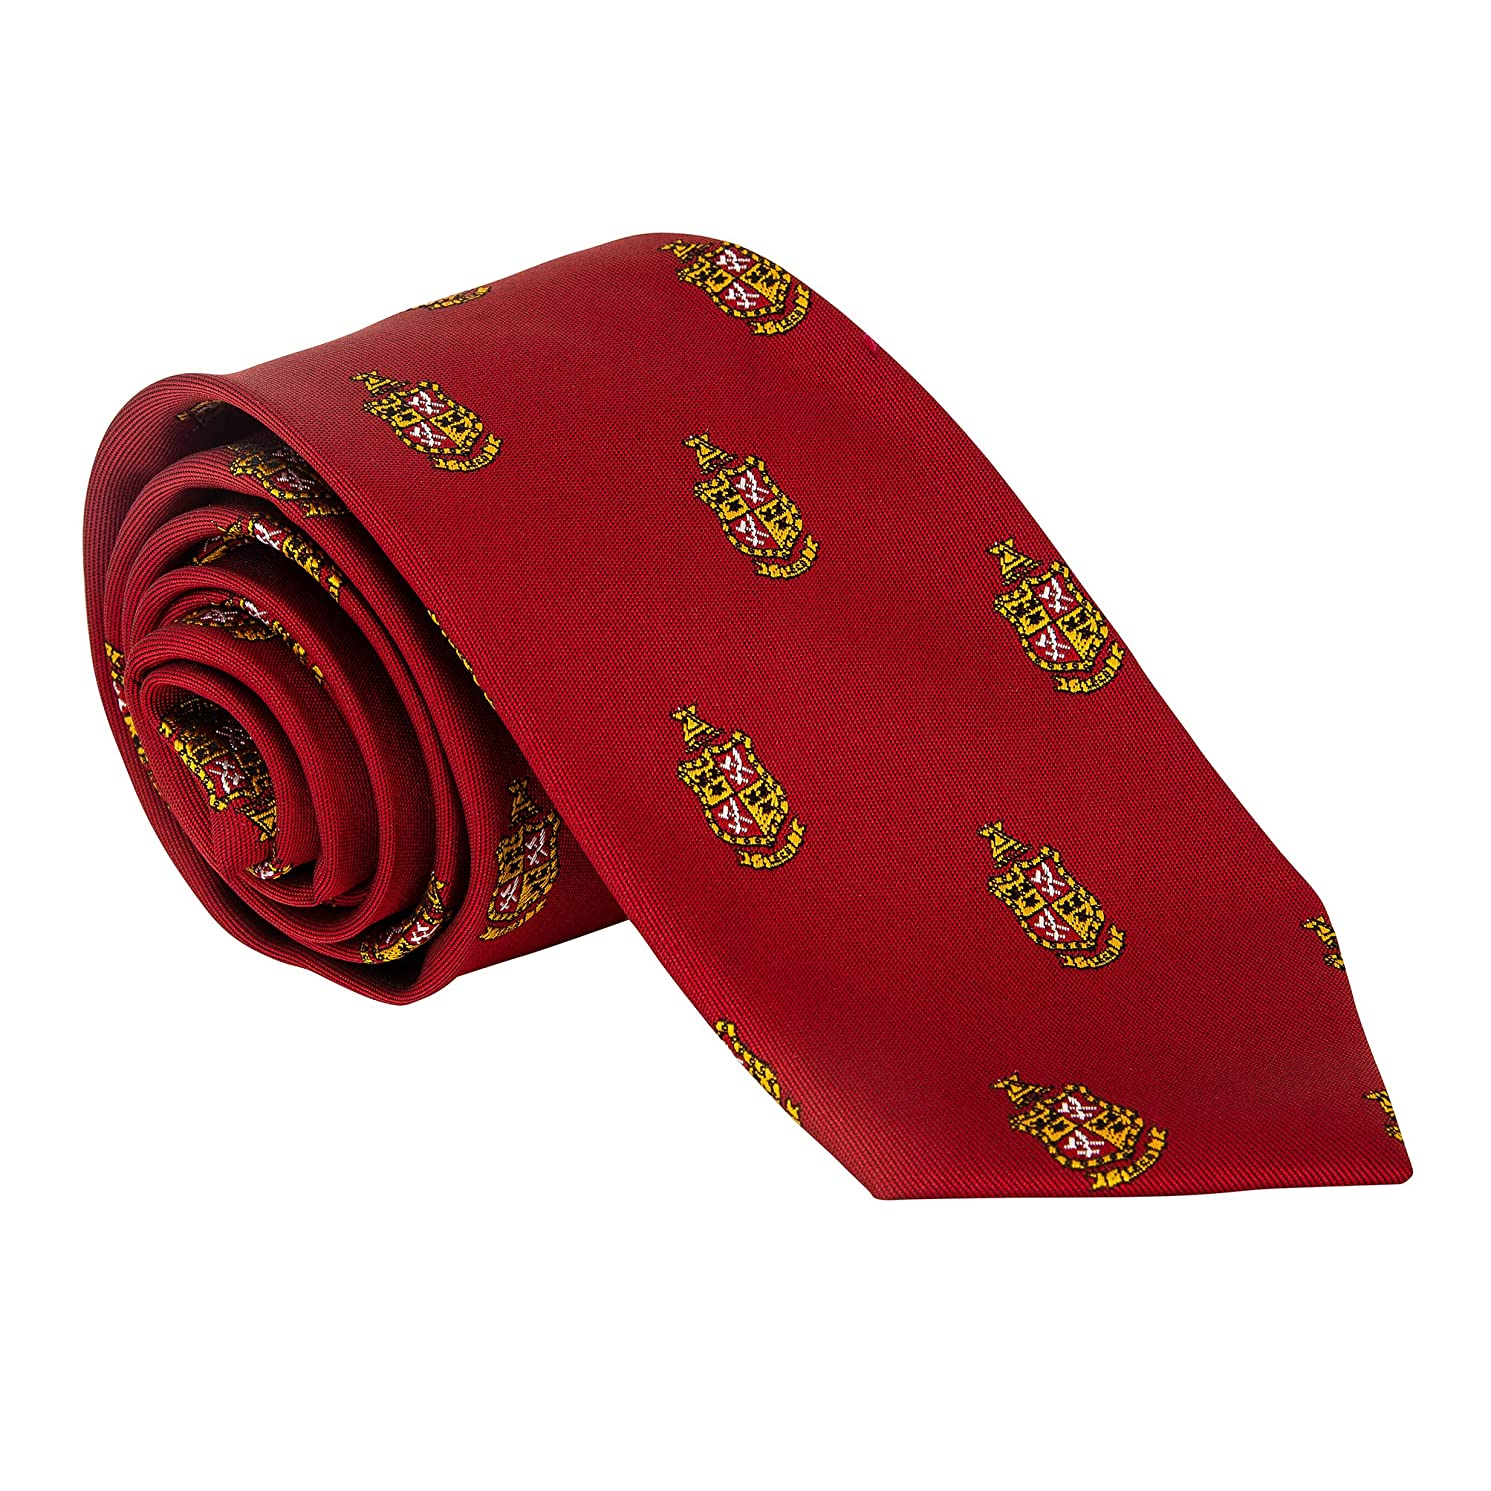 Delta Chi Fraternity Necktie Tie Greek Formal Occasion Standard Length Width deltas deltas (Repeating Crest Necktie)